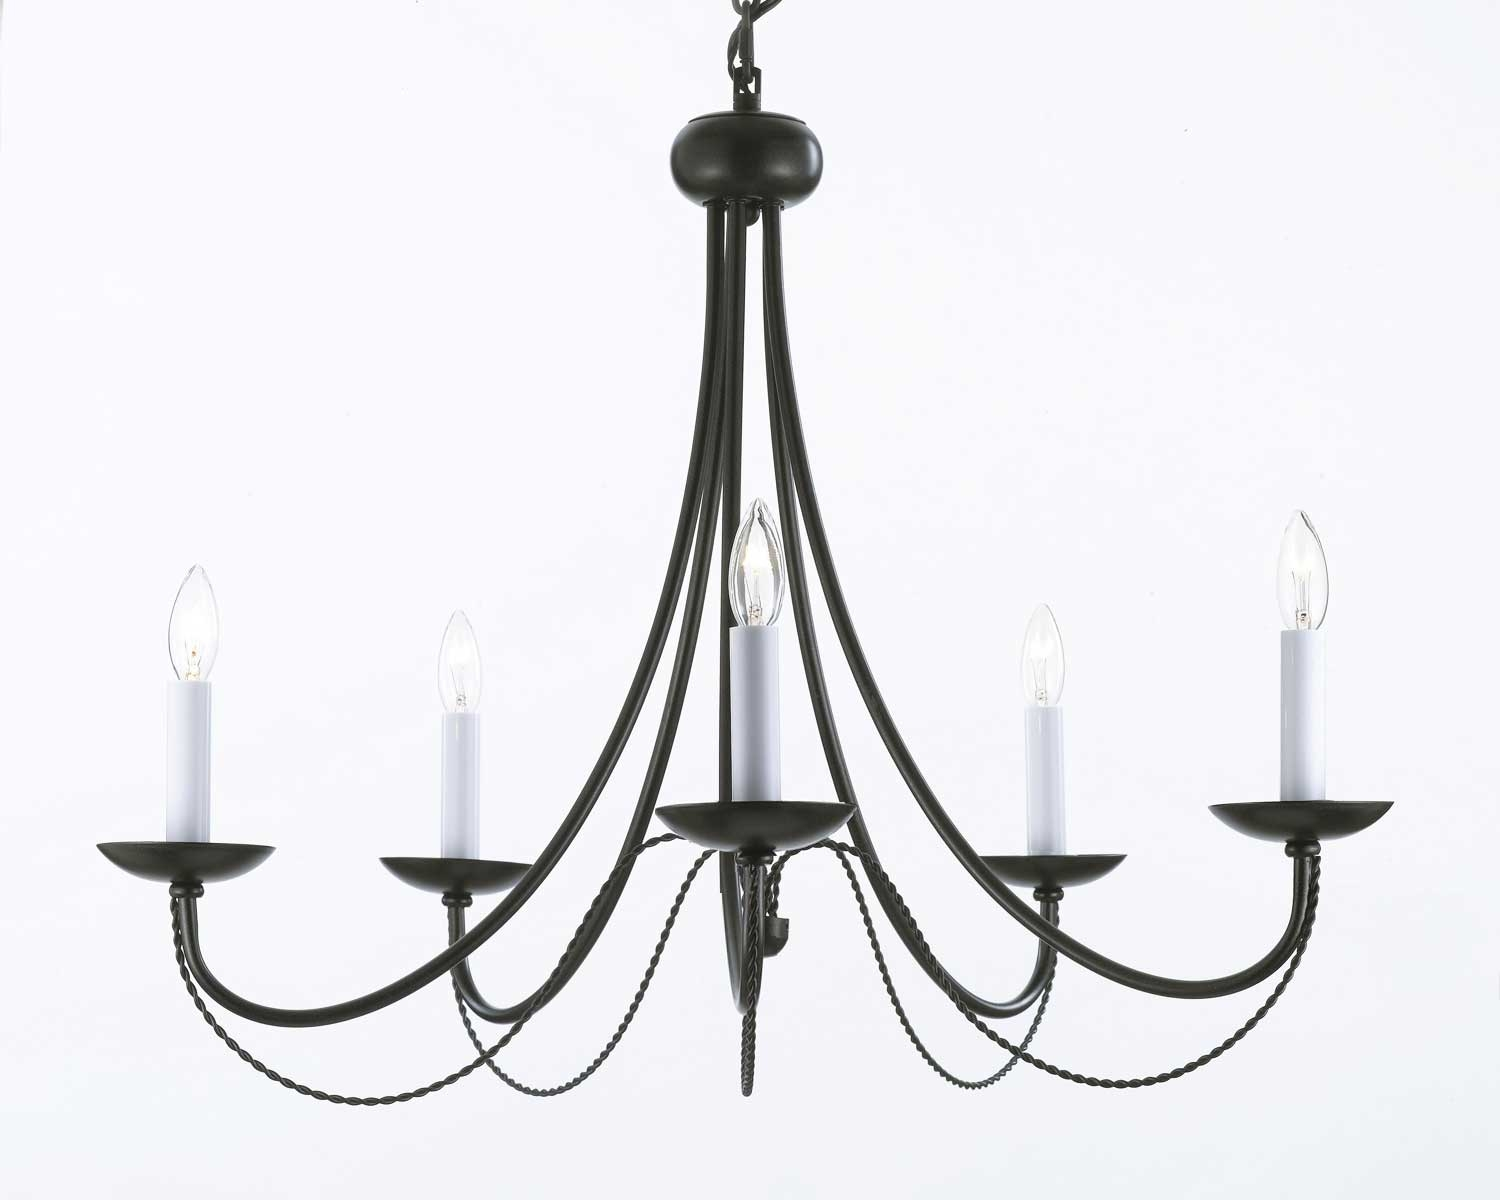 A7 4035 Gallery Wrought Without Crystal Wrought Iron Chandelier With Iron Chandelier (Image 1 of 15)